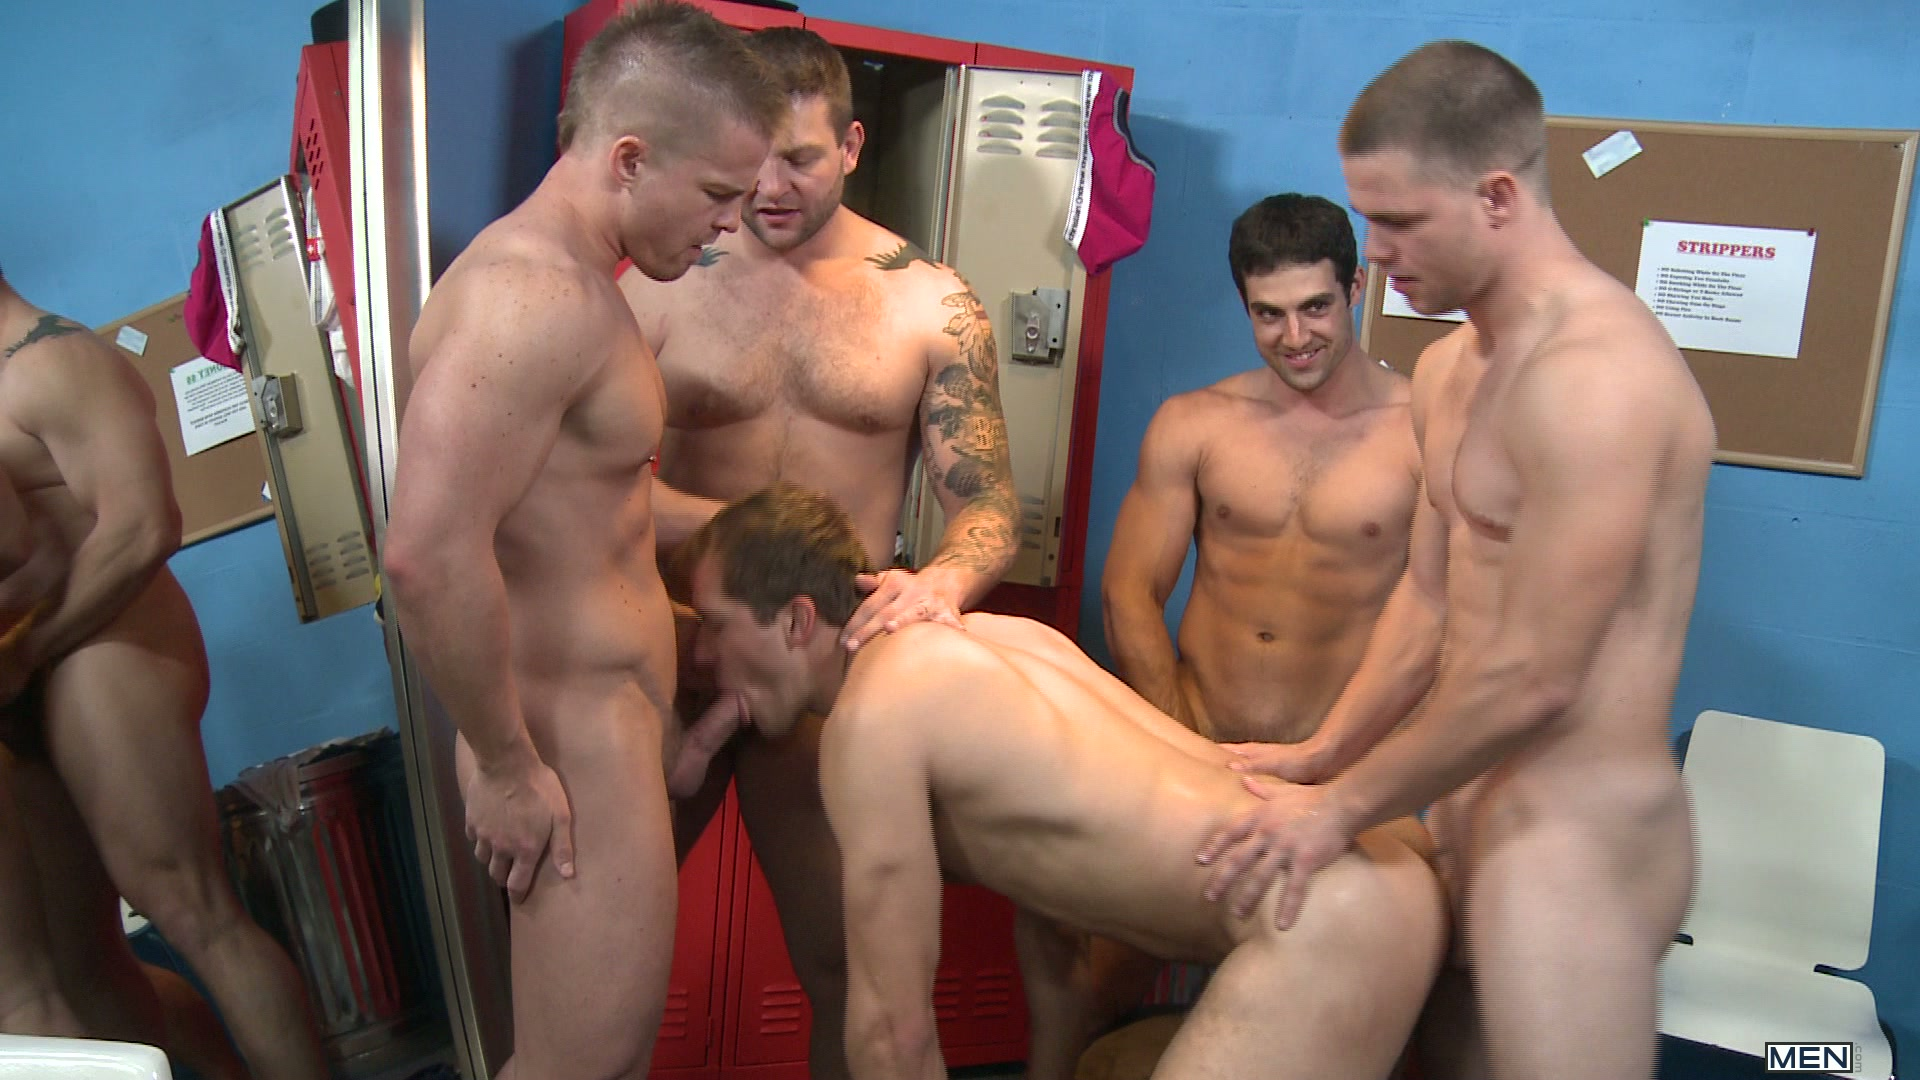 Watch The Strippers – Jo Jizz Orgy – Brandon Lewis – Colby Jansen – Jimmy Johnson – Liam Magnuson – Jack King (MEN.COM) Gay Porn Tube Videos Gifs And Free XXX HD Sex Movies Photos Online